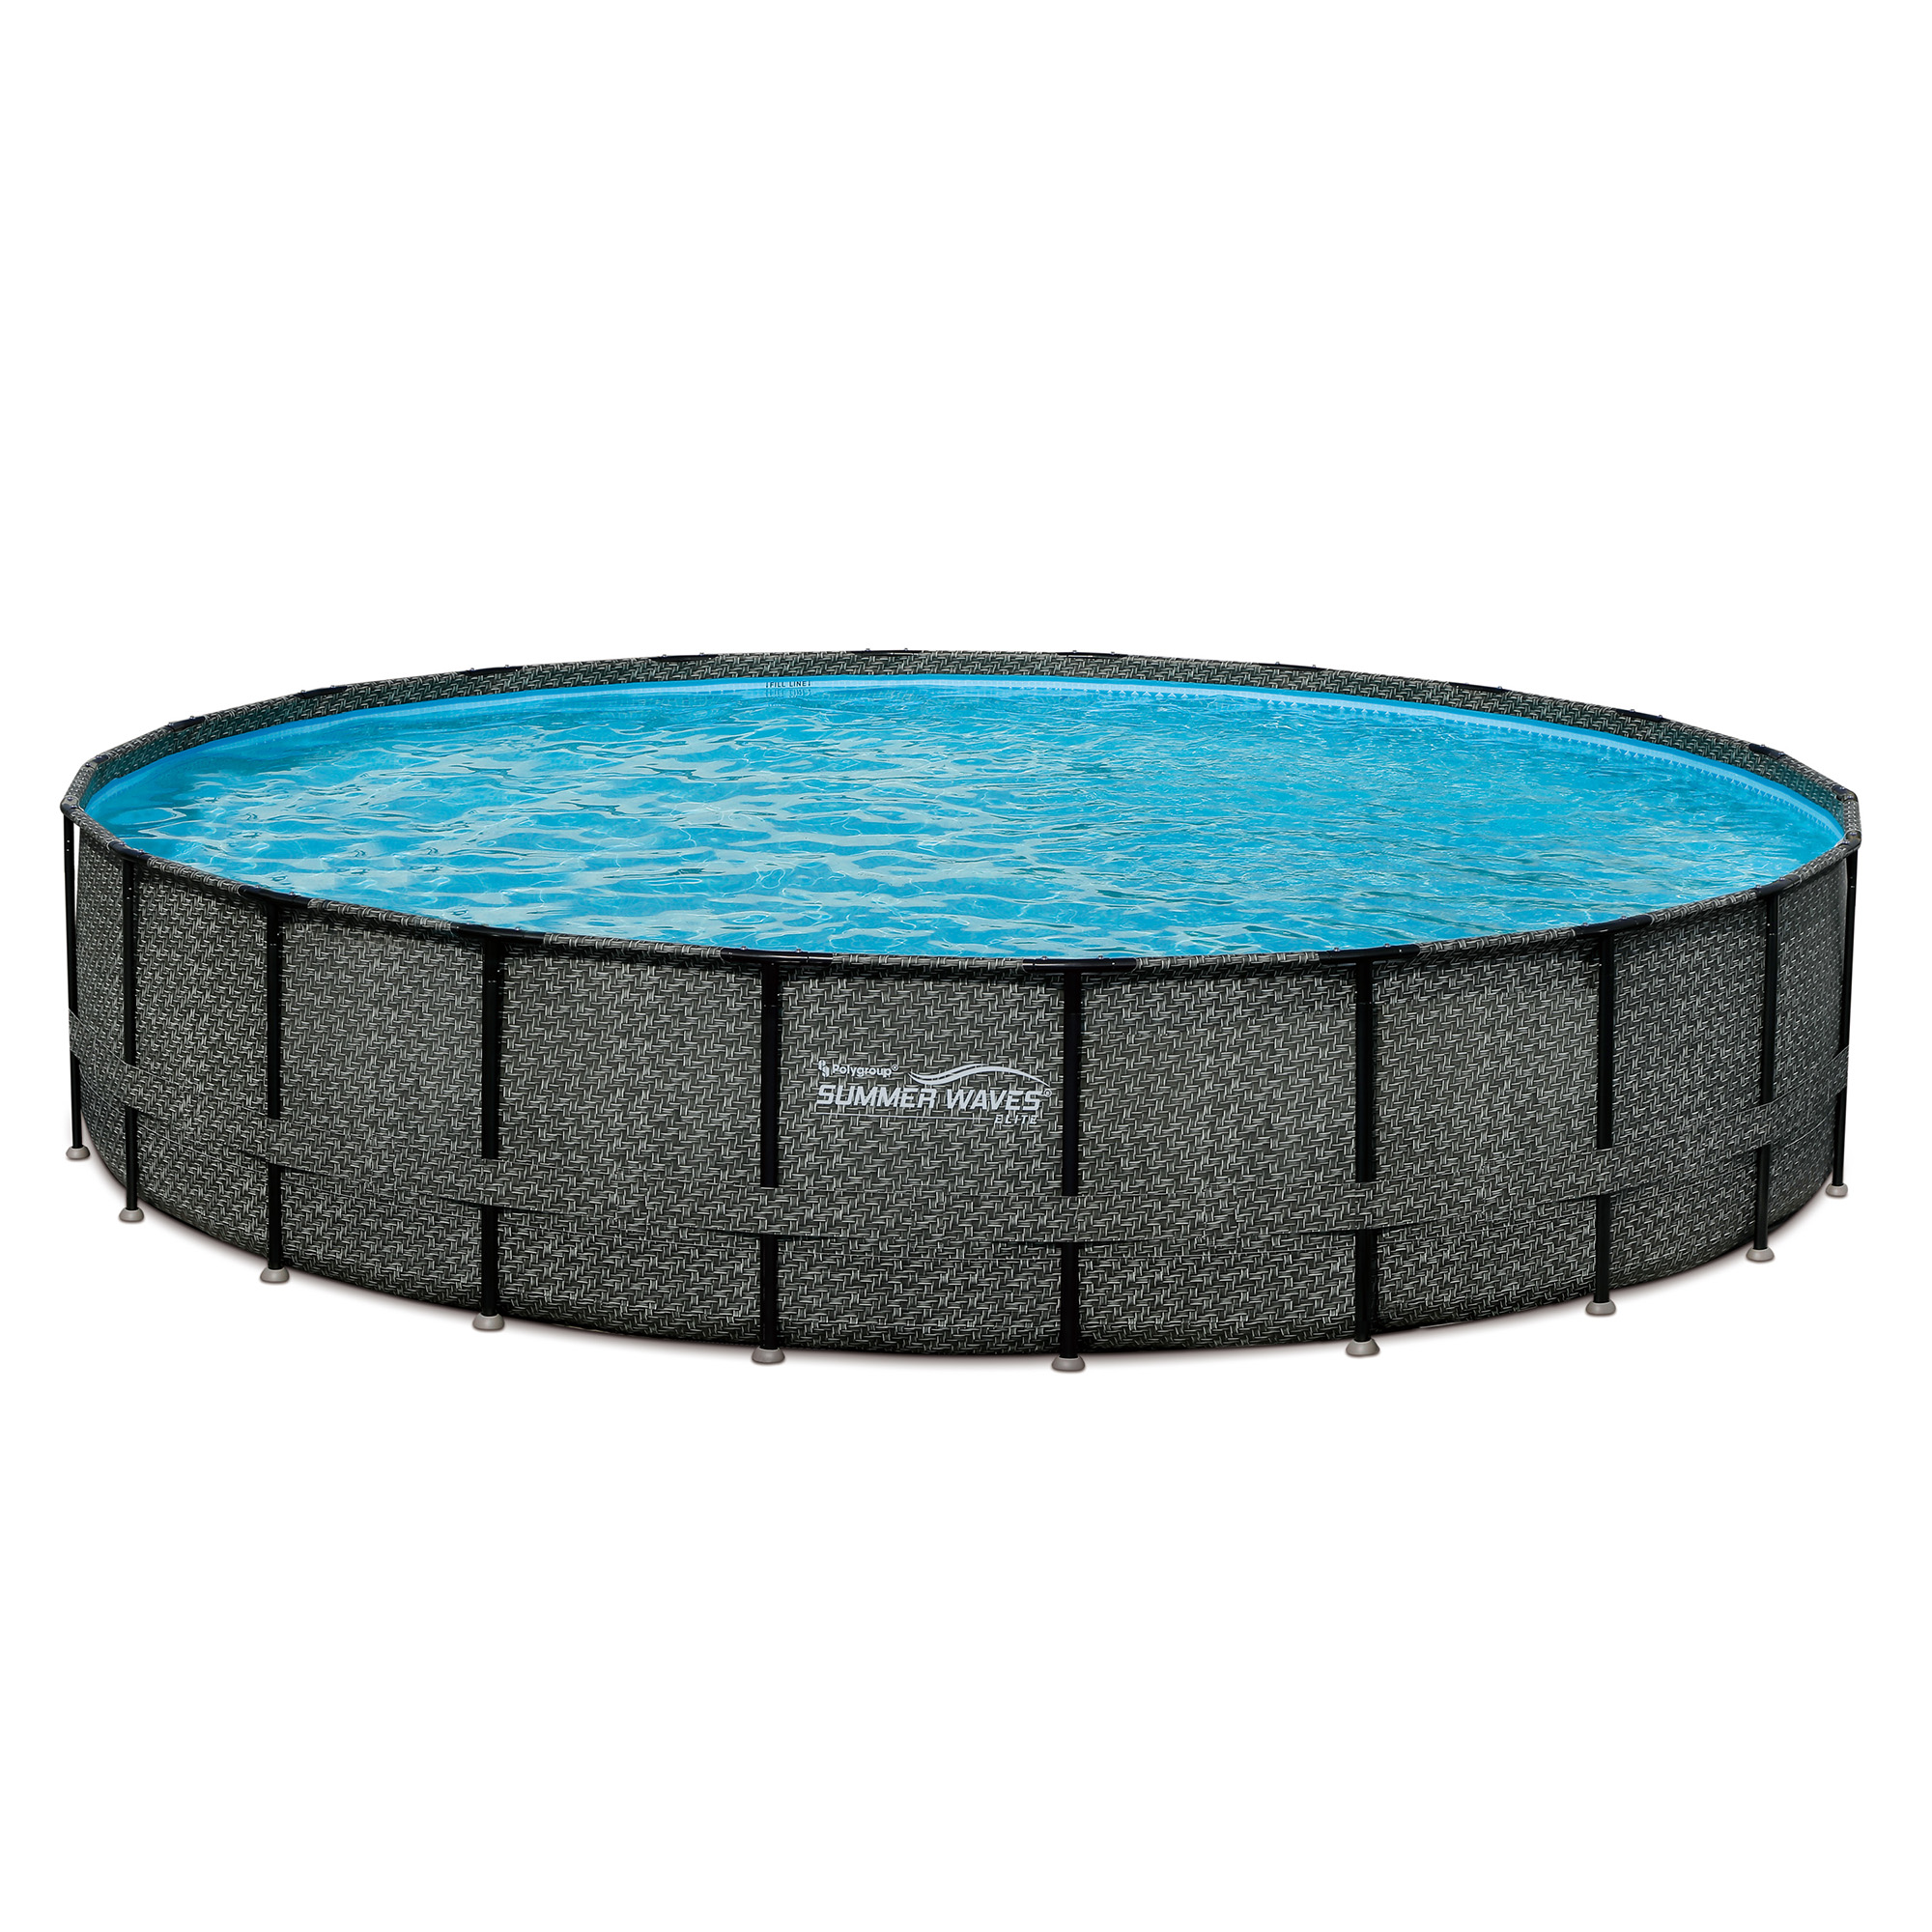 "Summer Waves Elite 22' x 52"" Premium Frame Above Ground Swimming Pool with Dark Wicker Print, Filter Pump System And Deluxe Accessory Set"